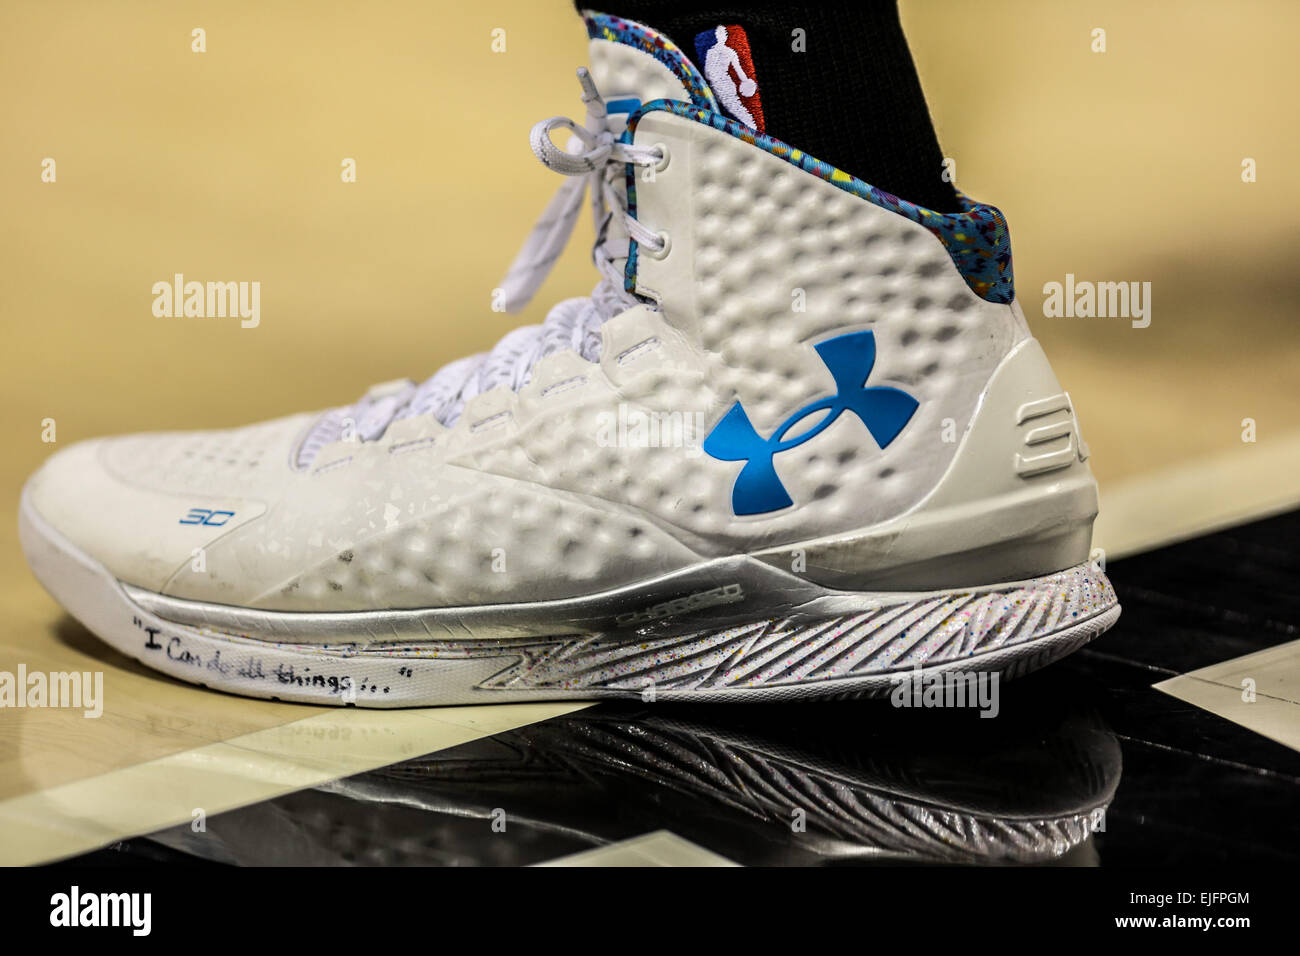 9444a02f2fa STEPHEN CURRY (30) wears his Under Armour signiture shoe   The Curry One  .  The Portland Trail Blazers play the Golden State Warriors at the Moda  Center on ...